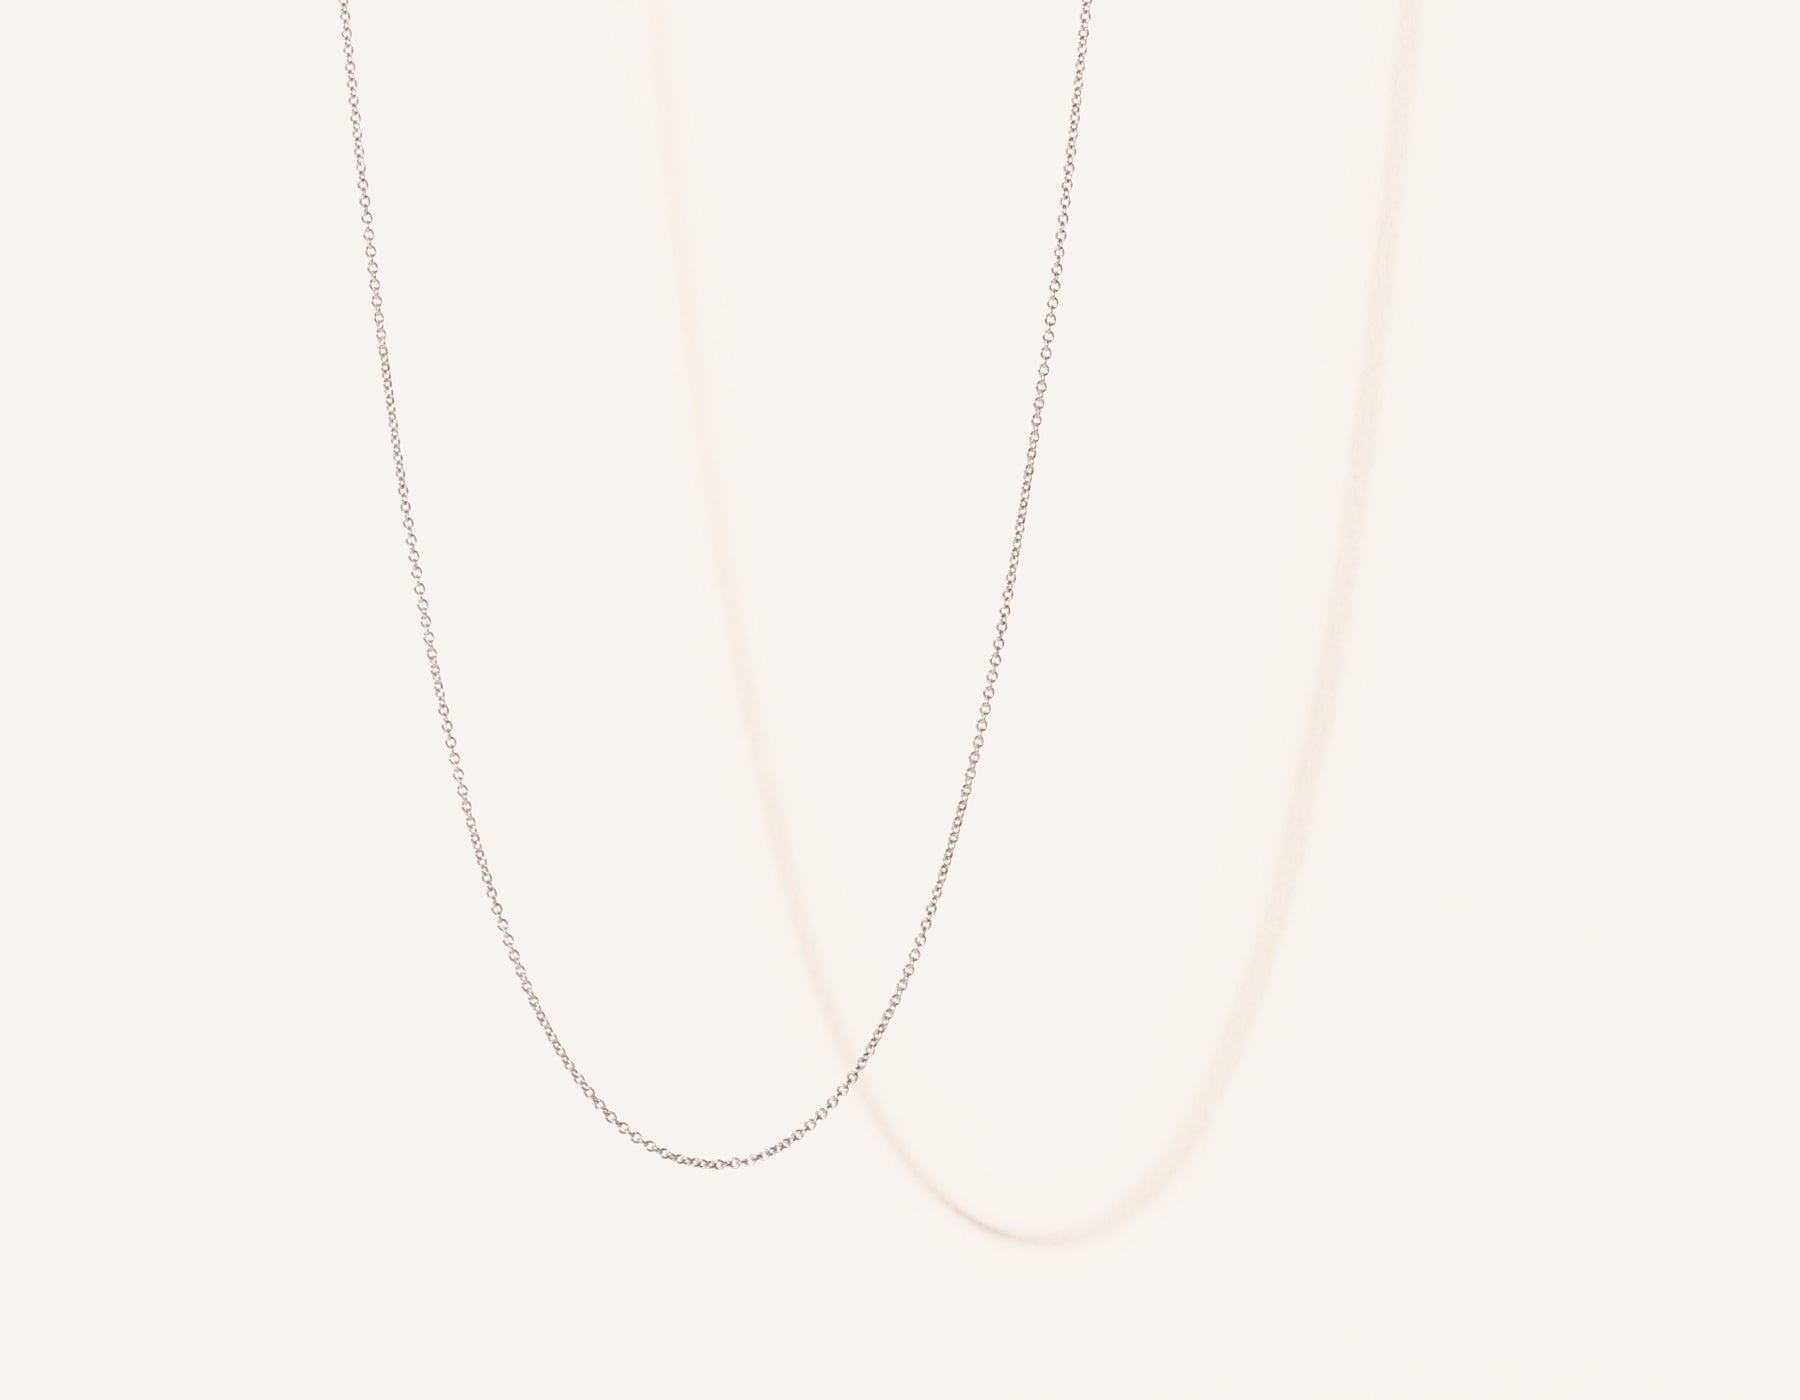 Modern minimalist thin Oval Link Chain necklace in 14k solid gold by Vrai and Oro jewelry, 14K White Gold